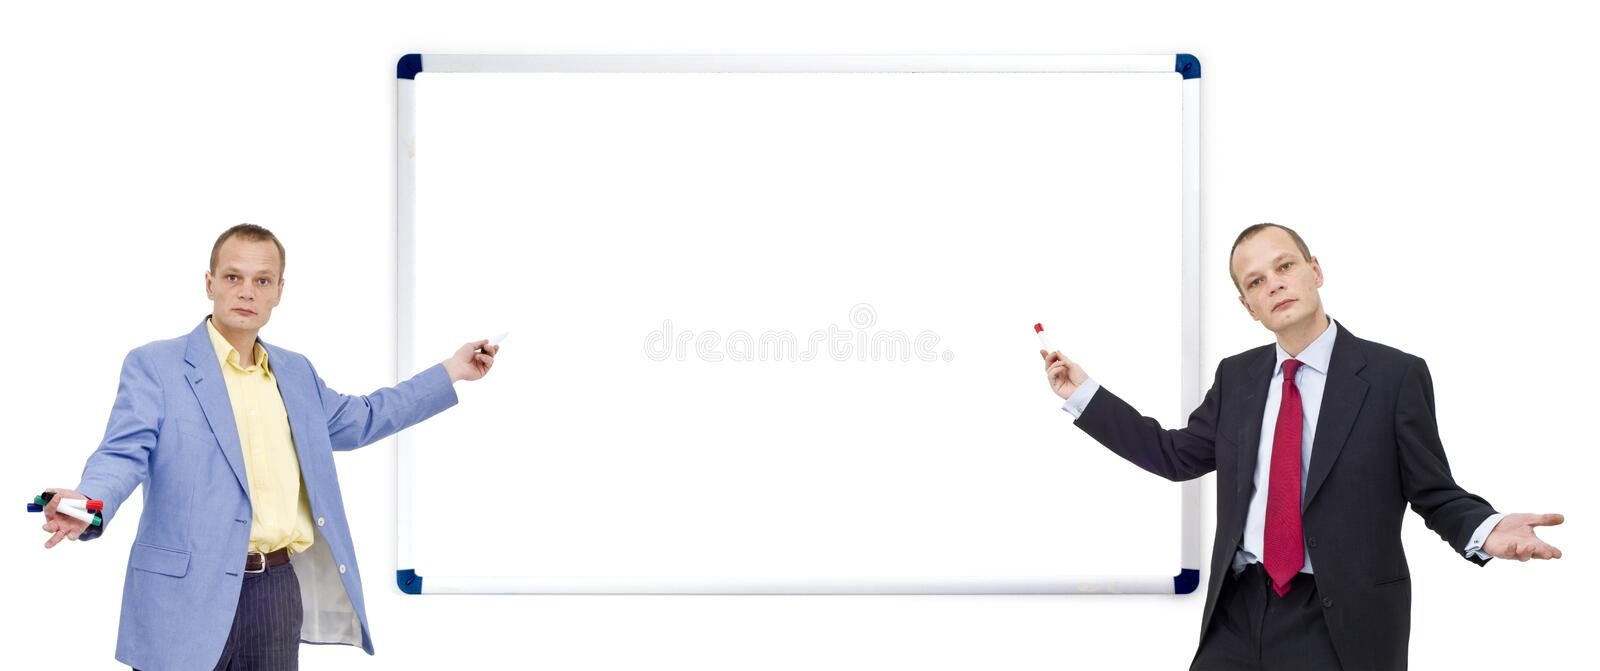 Download Whiteboard presentation stock image. Image of serious - 7970987